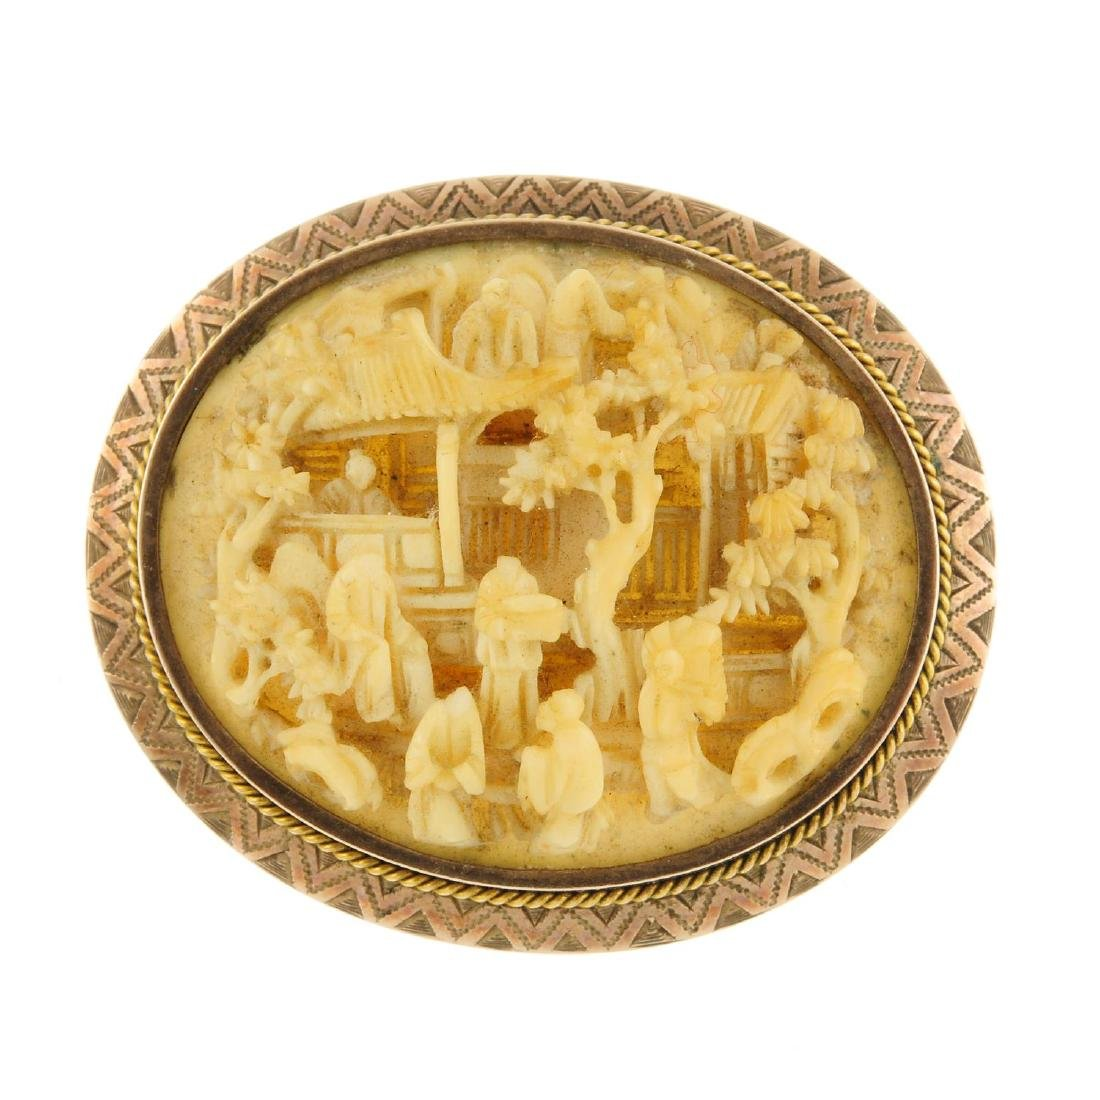 An early 20th century carved ivory brooch. The oval